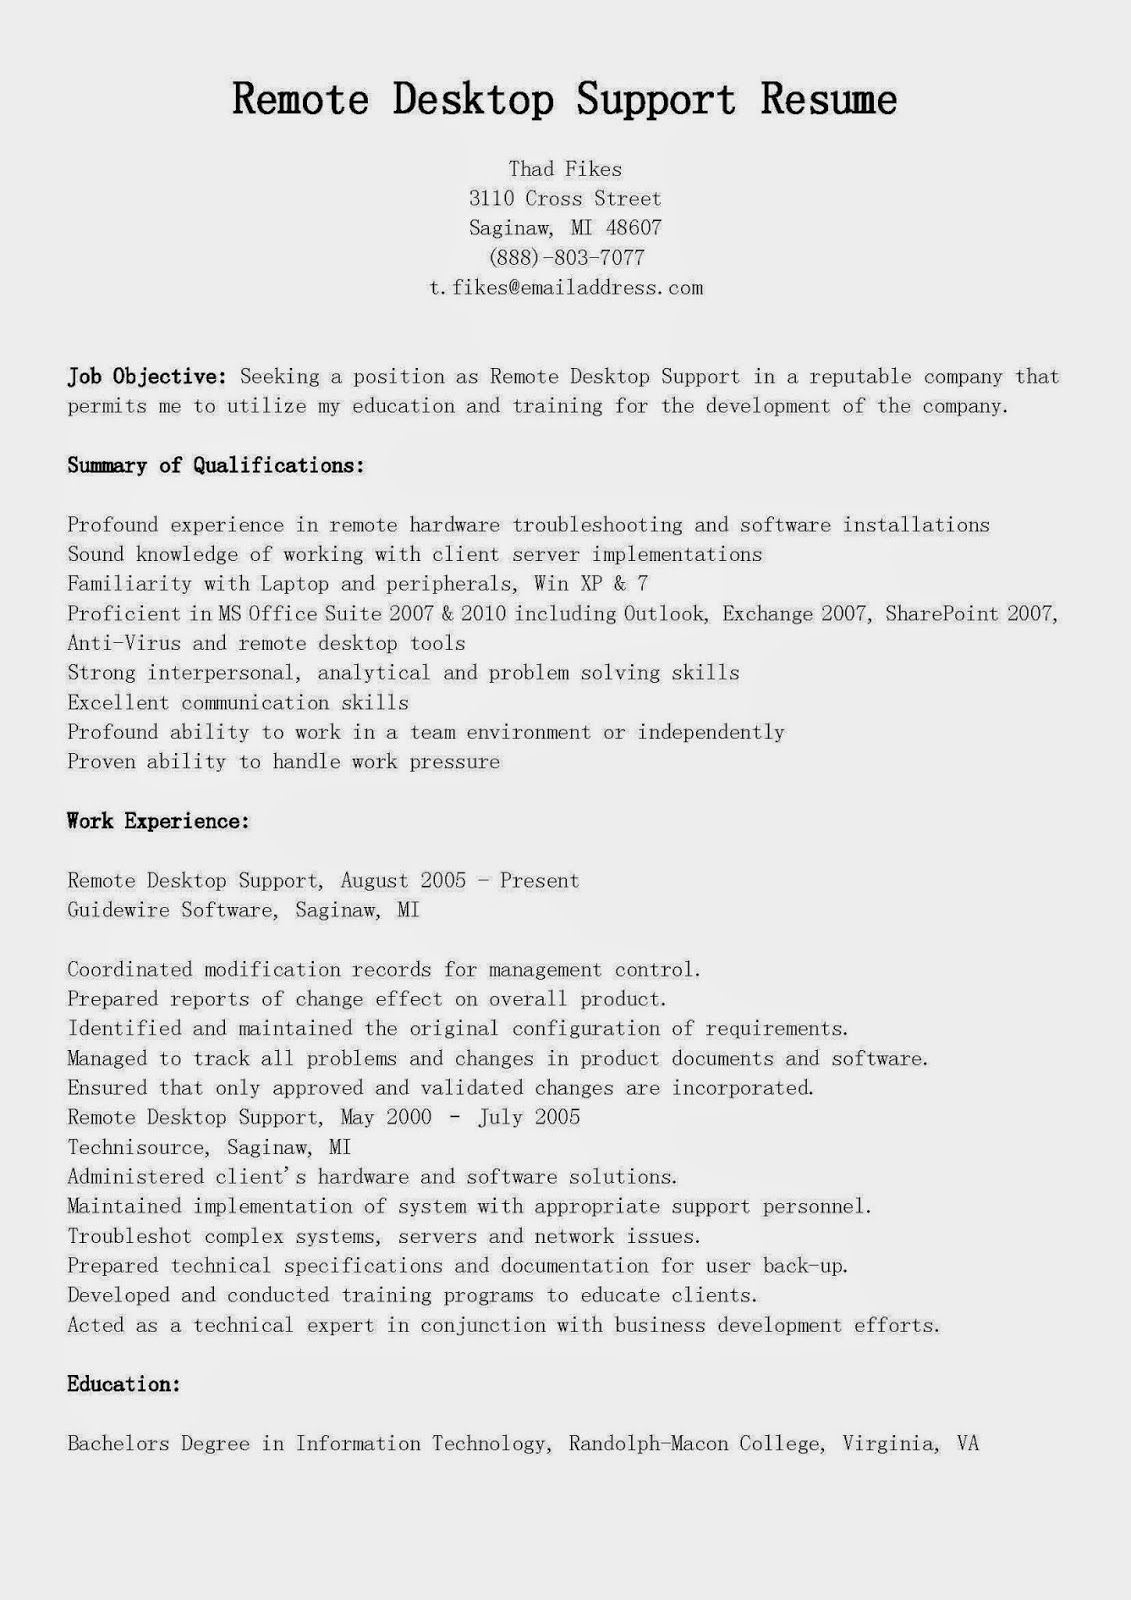 Sample Business Resume Remote Desktop Support Resume Sample Httpresumesamplesdownload